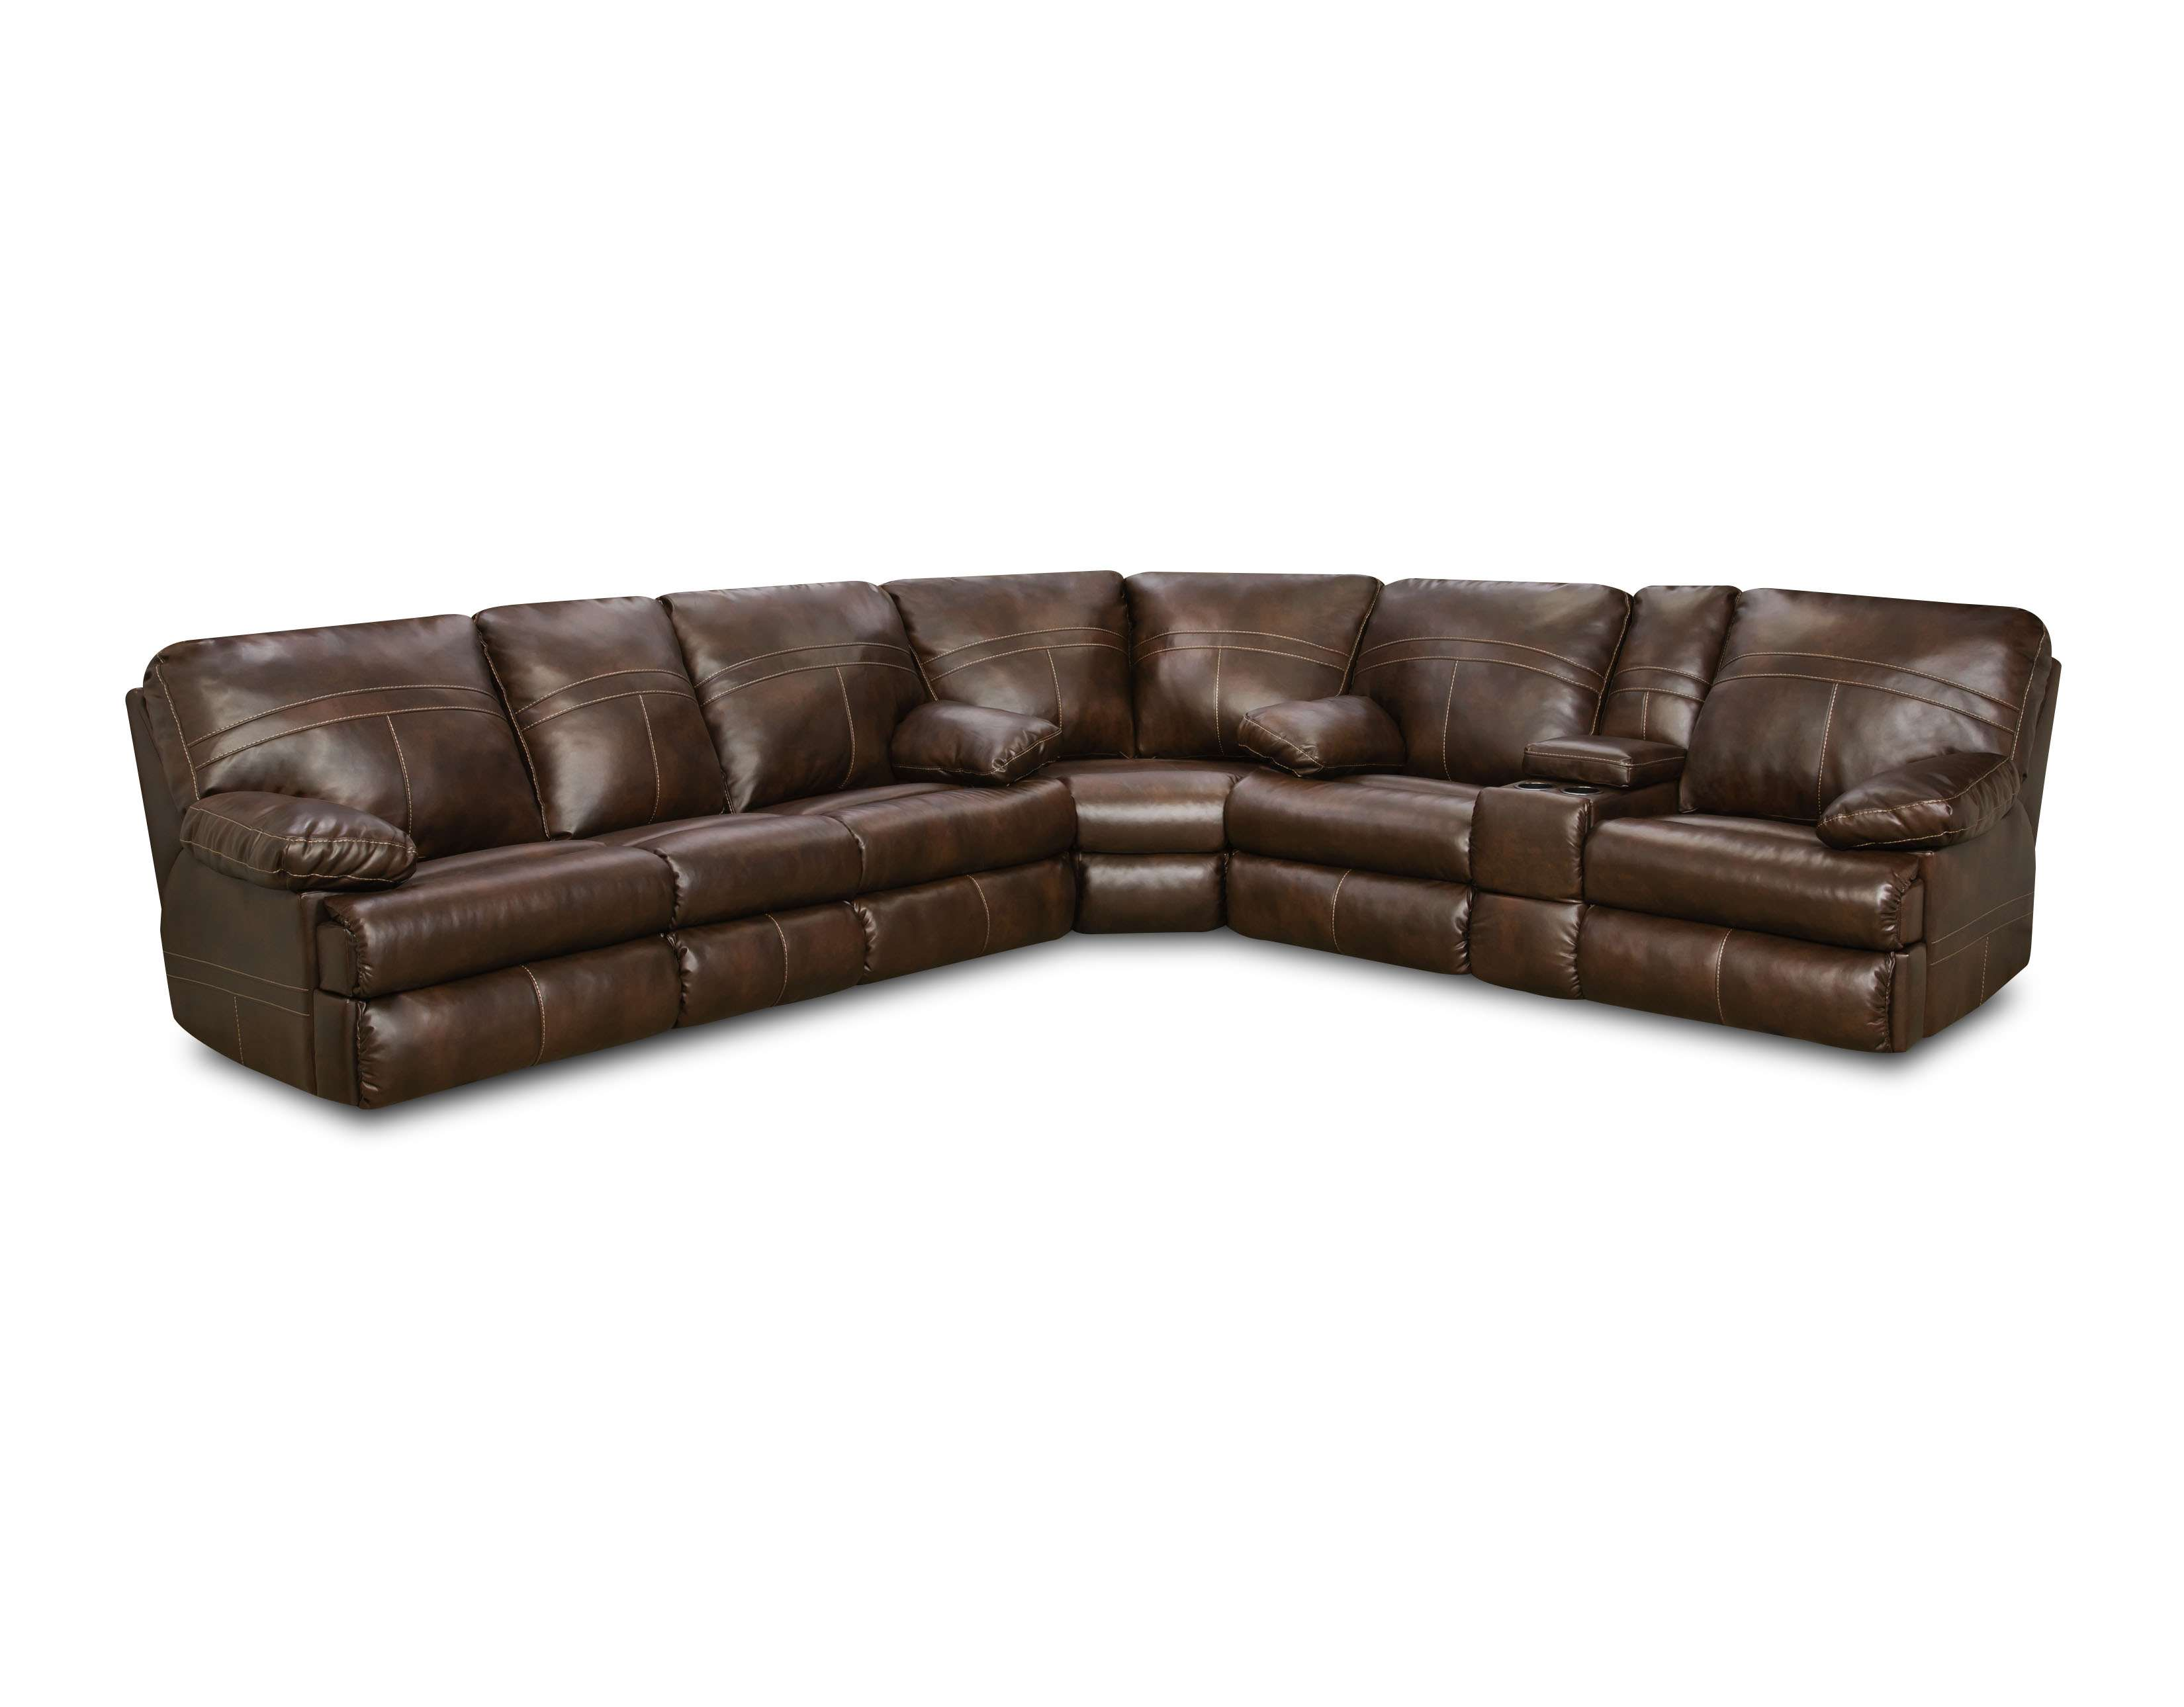 Superbe Miracle Saddle 3 Piece Motion Sectional Sofa